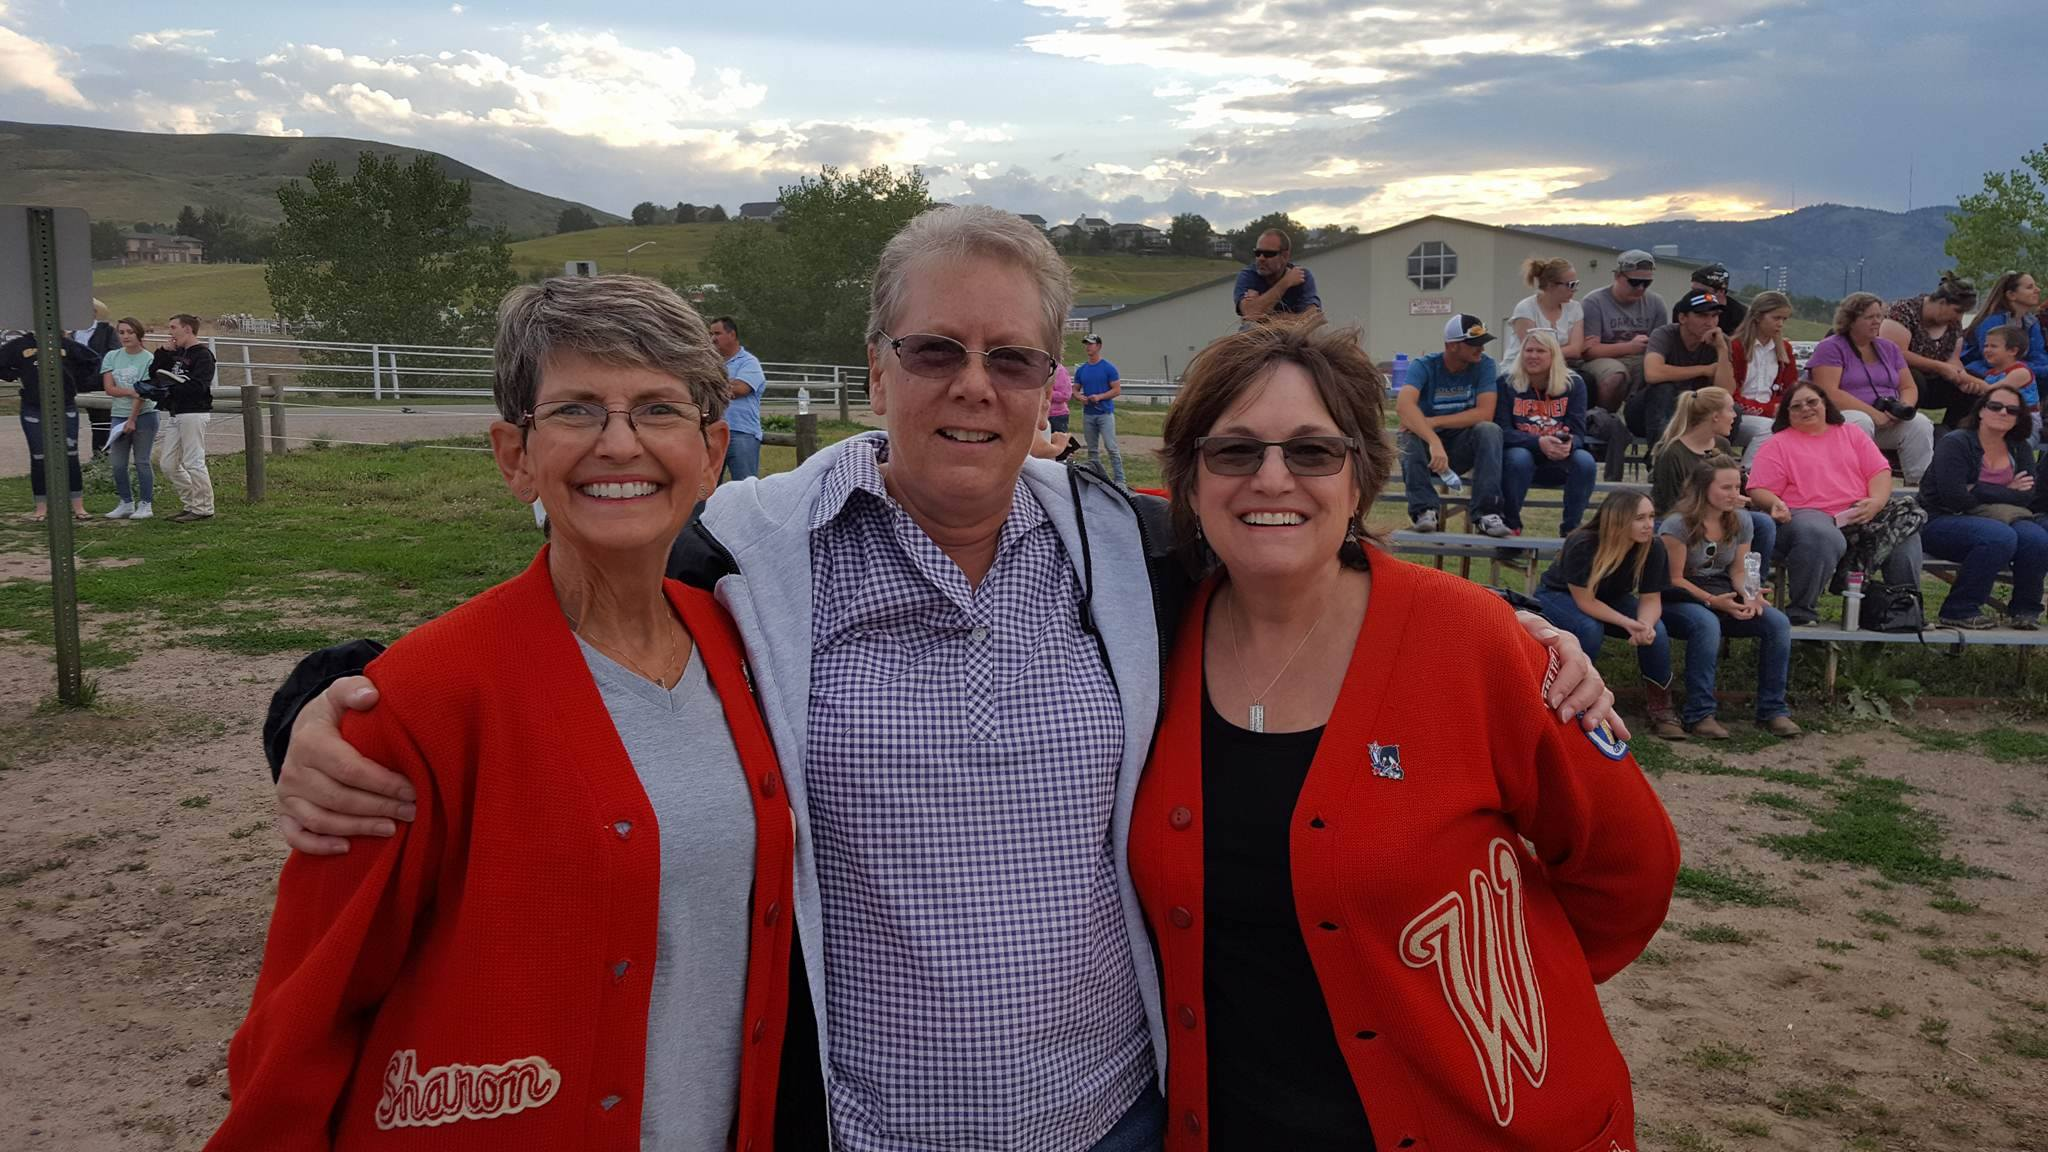 Alumni: Sharon Easley Walker (left), Judy Hudgins Kinyon (center), and Debbie Easley Emert (right). We were so thrilled that Sharon made the trip from California!